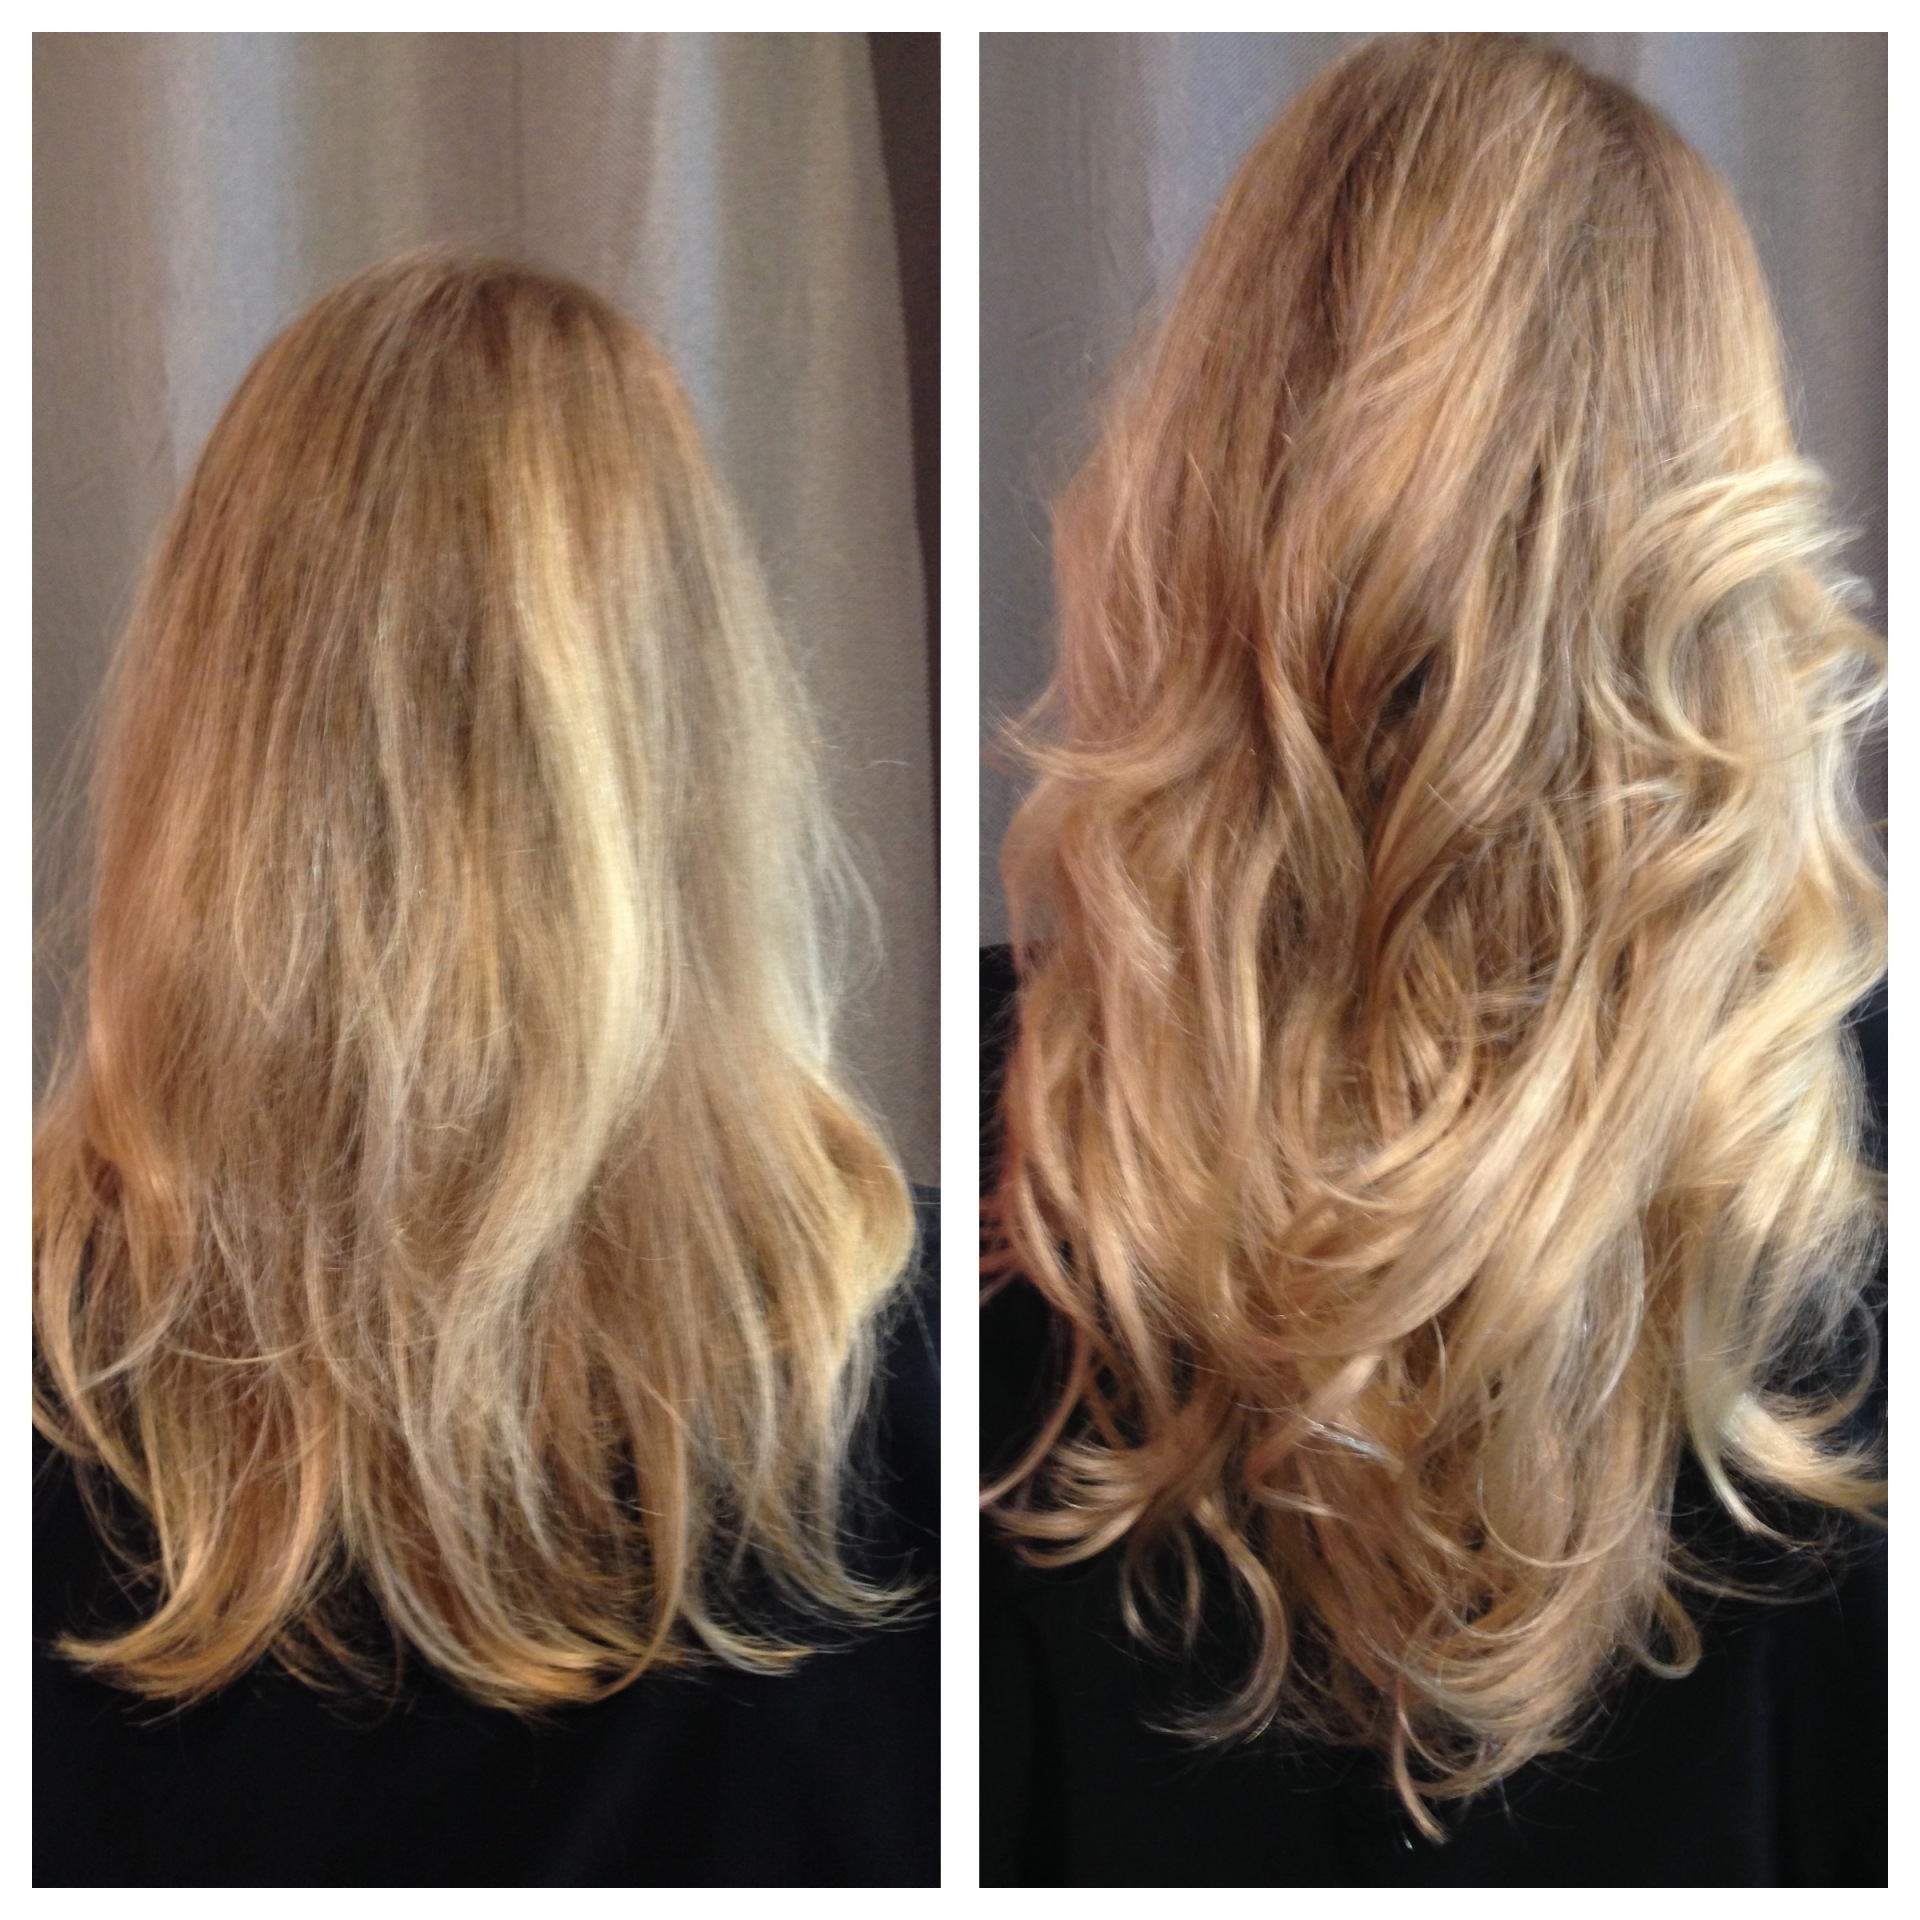 los angeles hair extension specialist